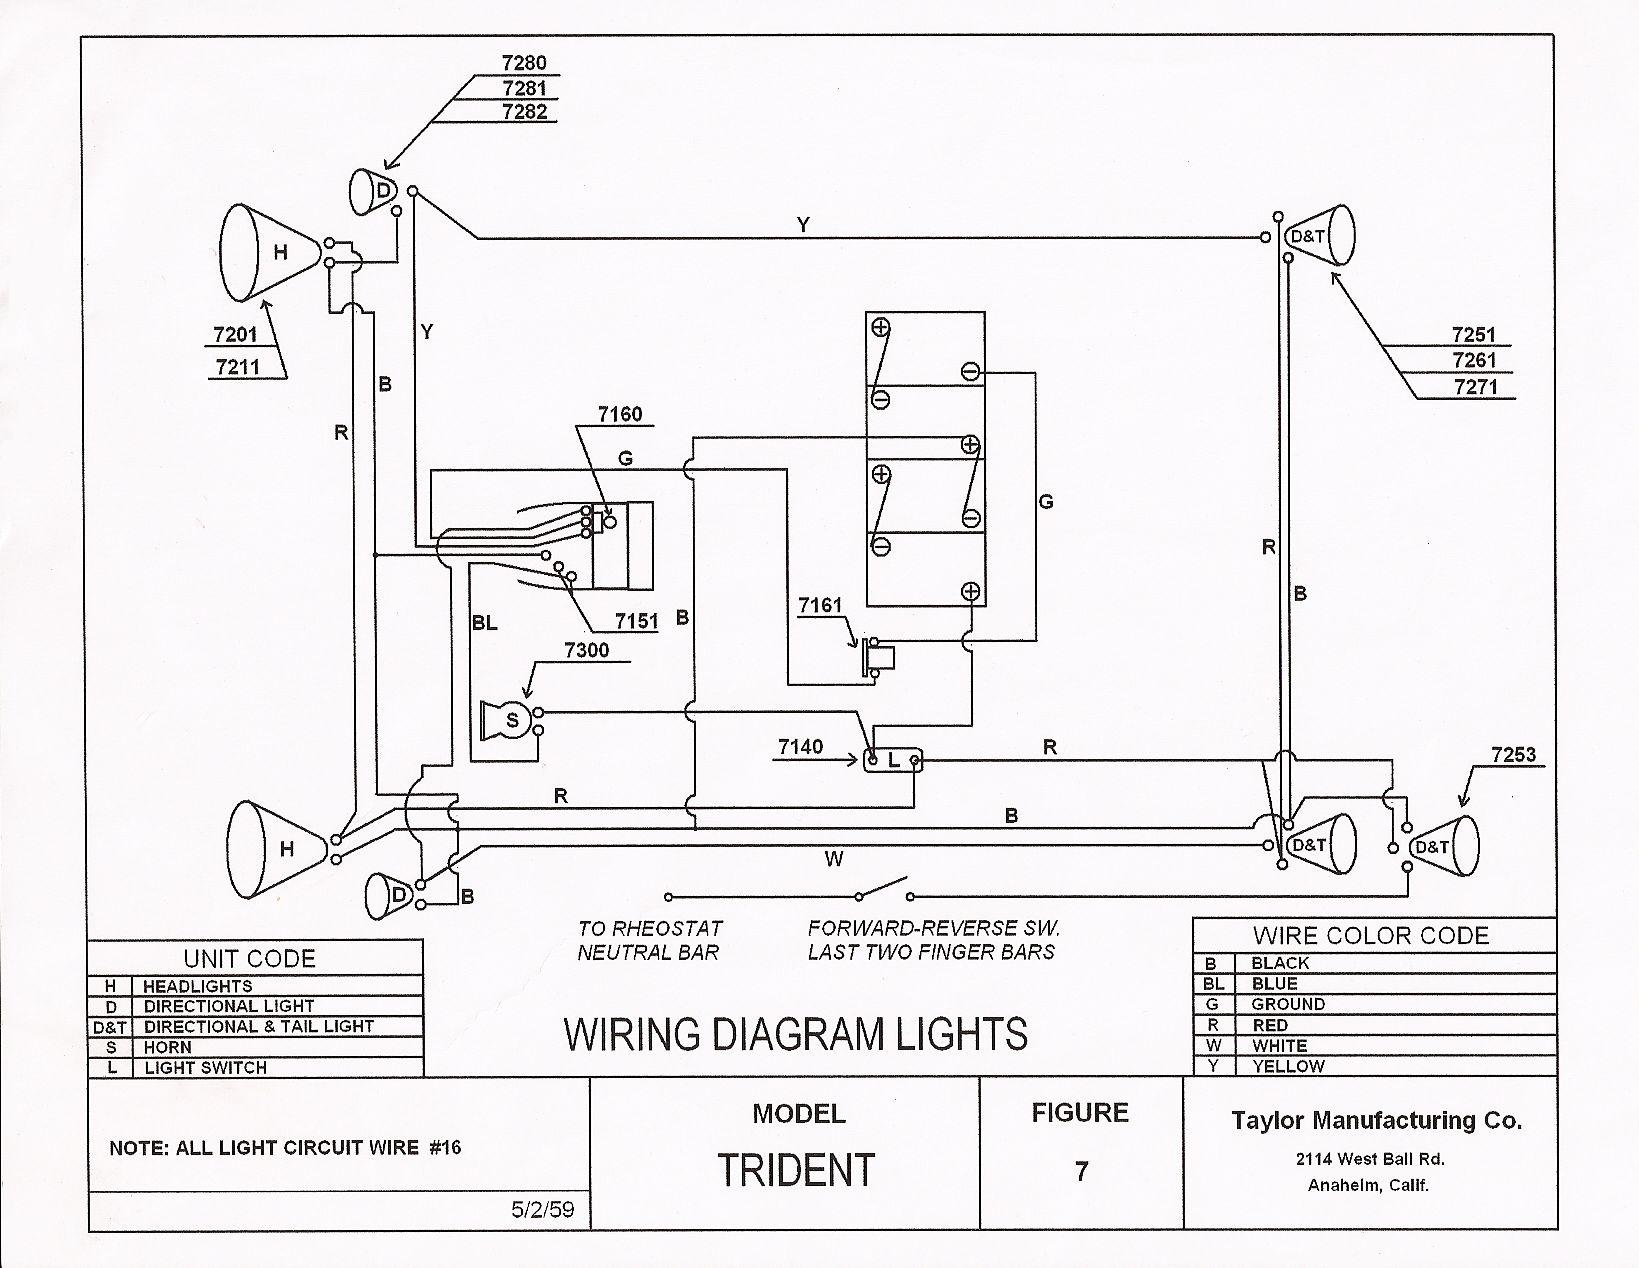 hight resolution of tomberlin wiring diagram wiring diagram usertomberlin 48 volt wiring diagram wiring diagram img 2009 tomberlin emerge